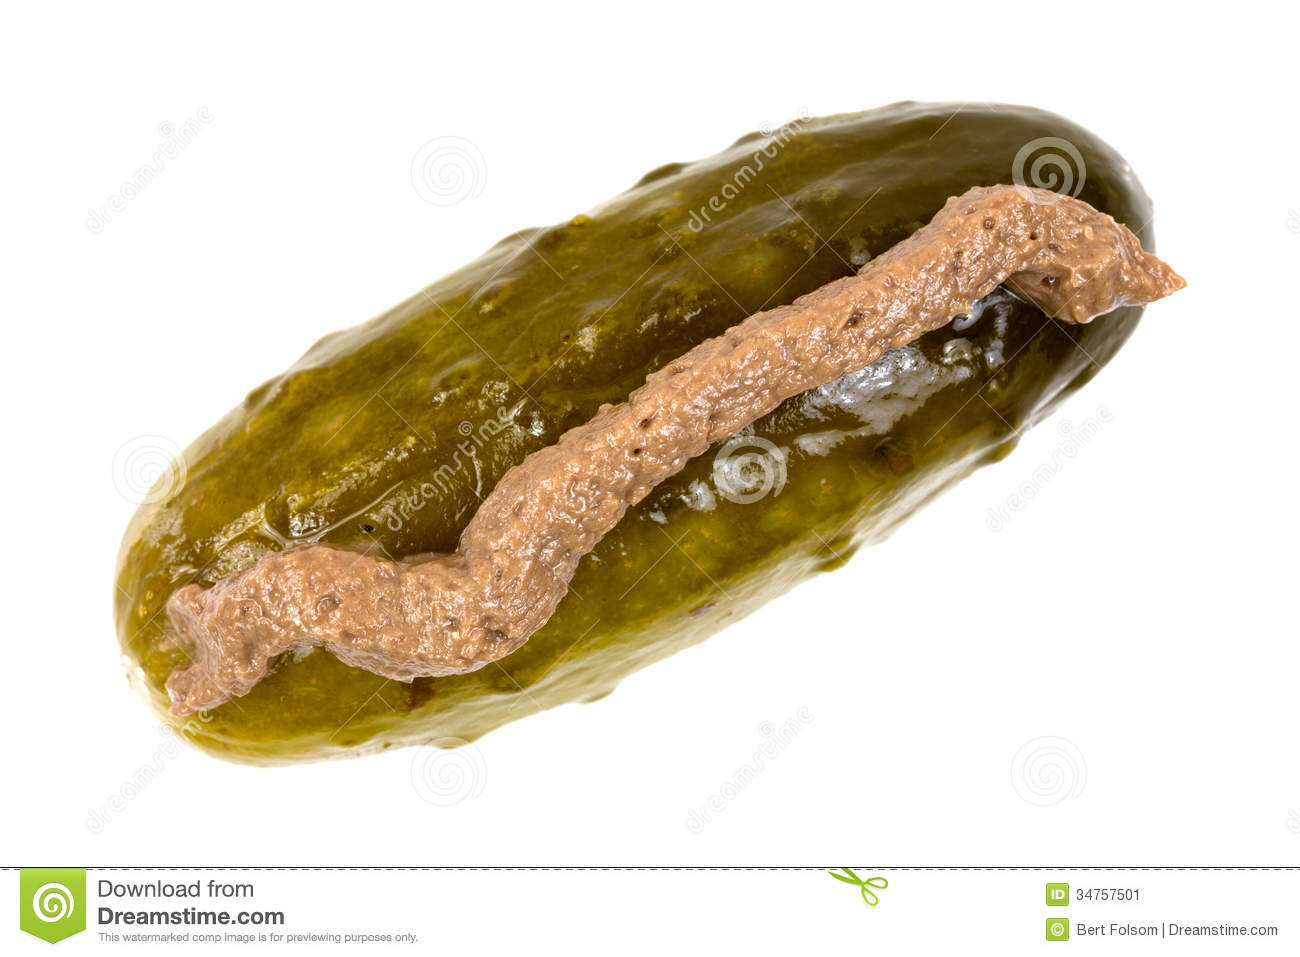 Dill Pickle With Anchovy Paste On Top Stock Image - Image: 34757501